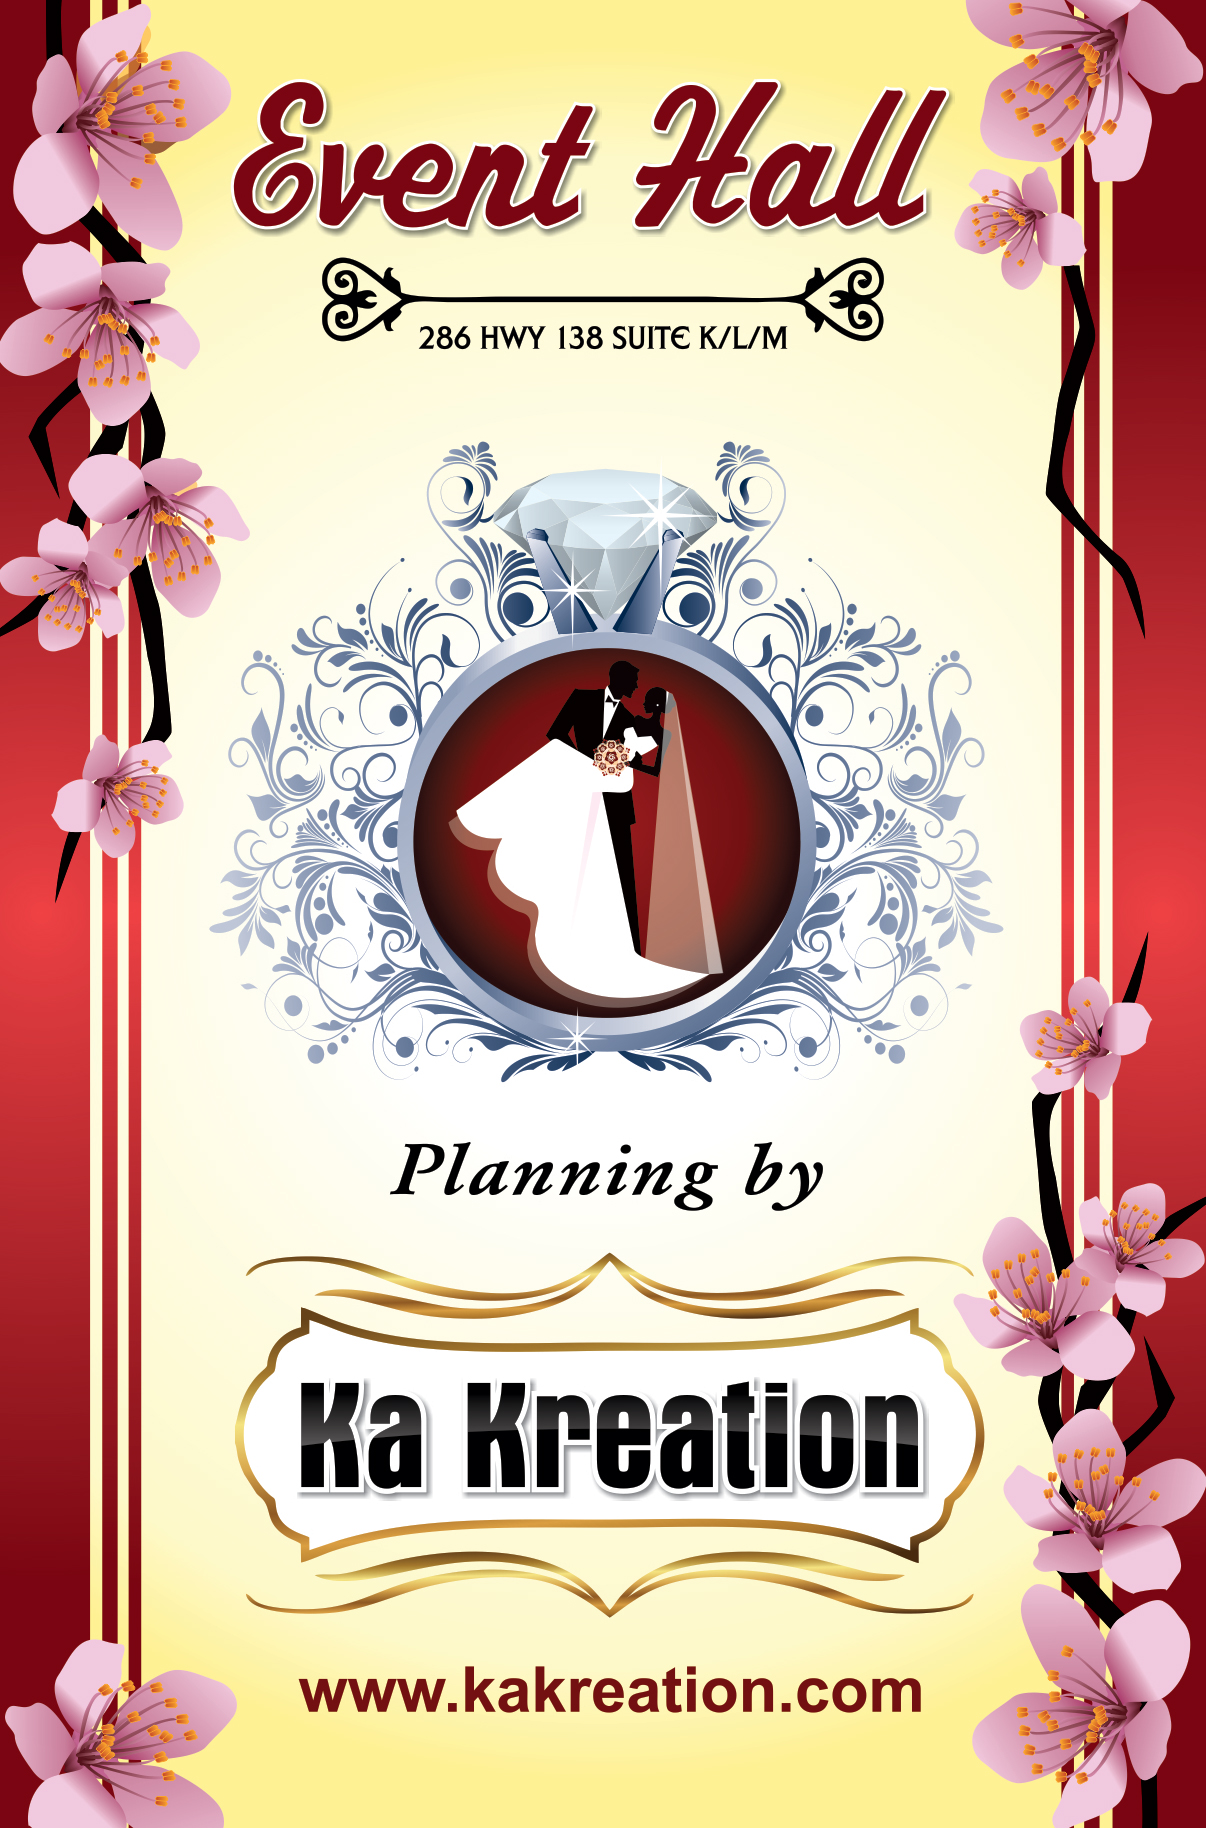 ka kreation flyer design